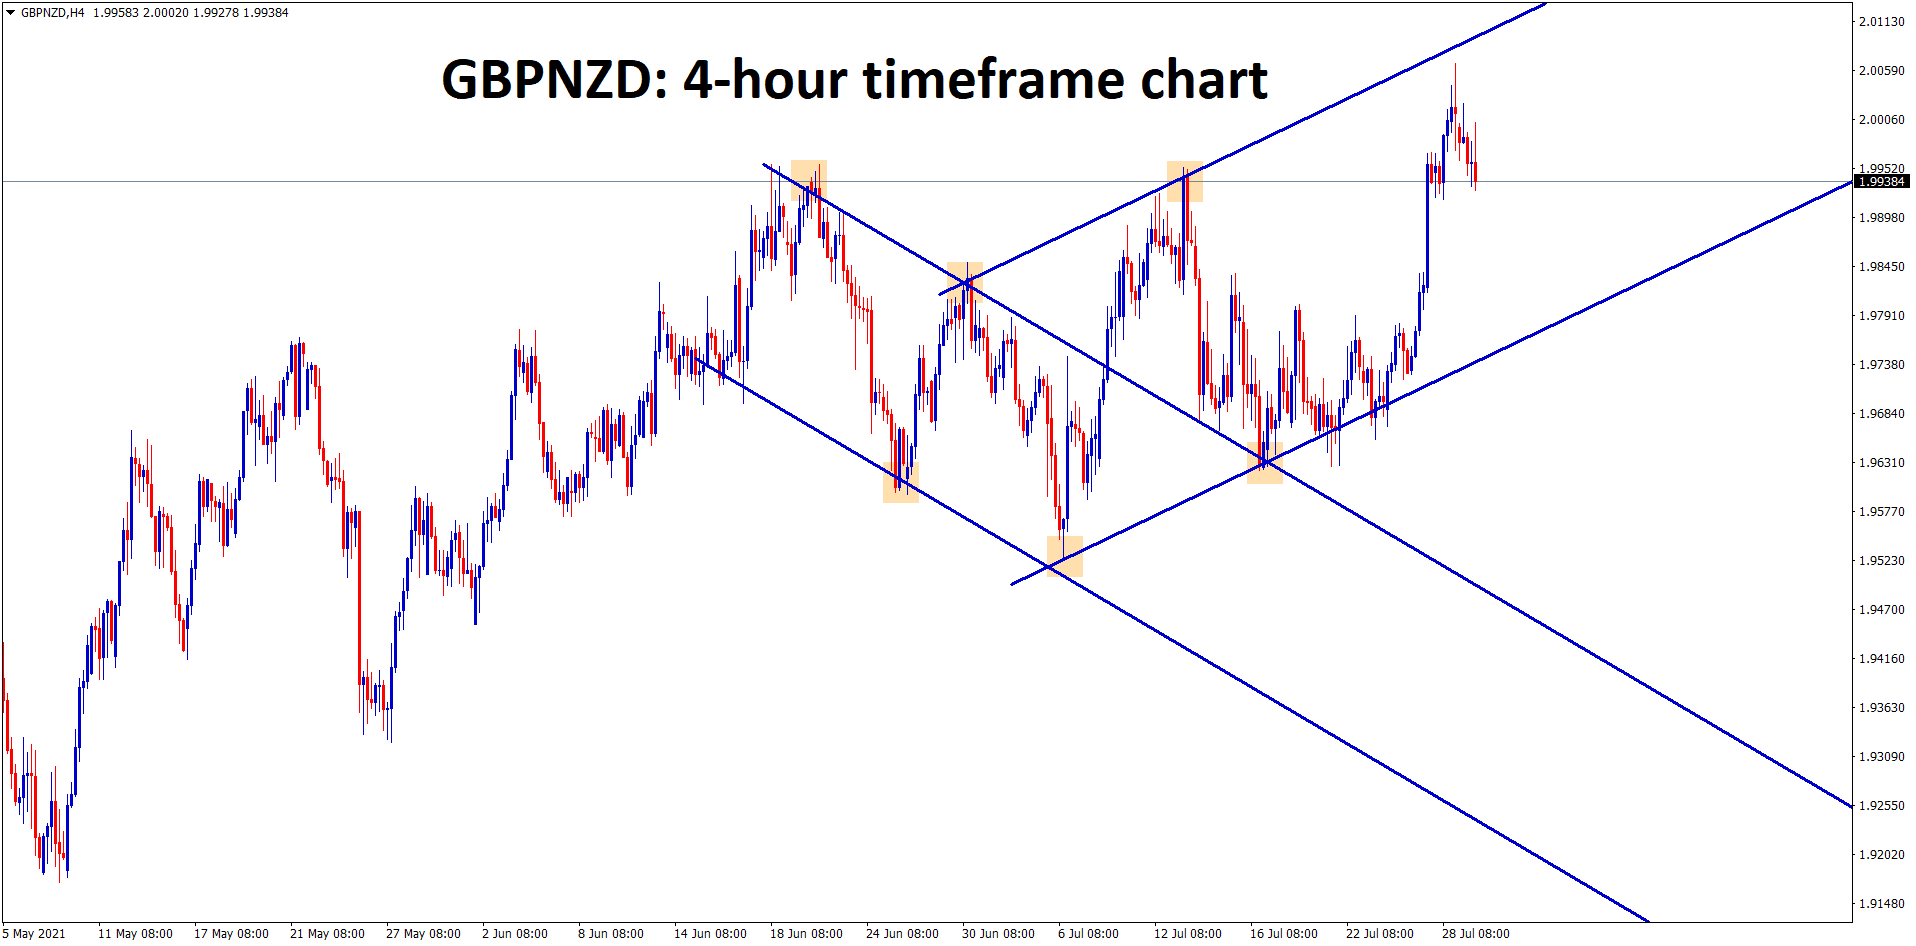 GBPNZD made a small correction from the higher high zone of an Uptrend line